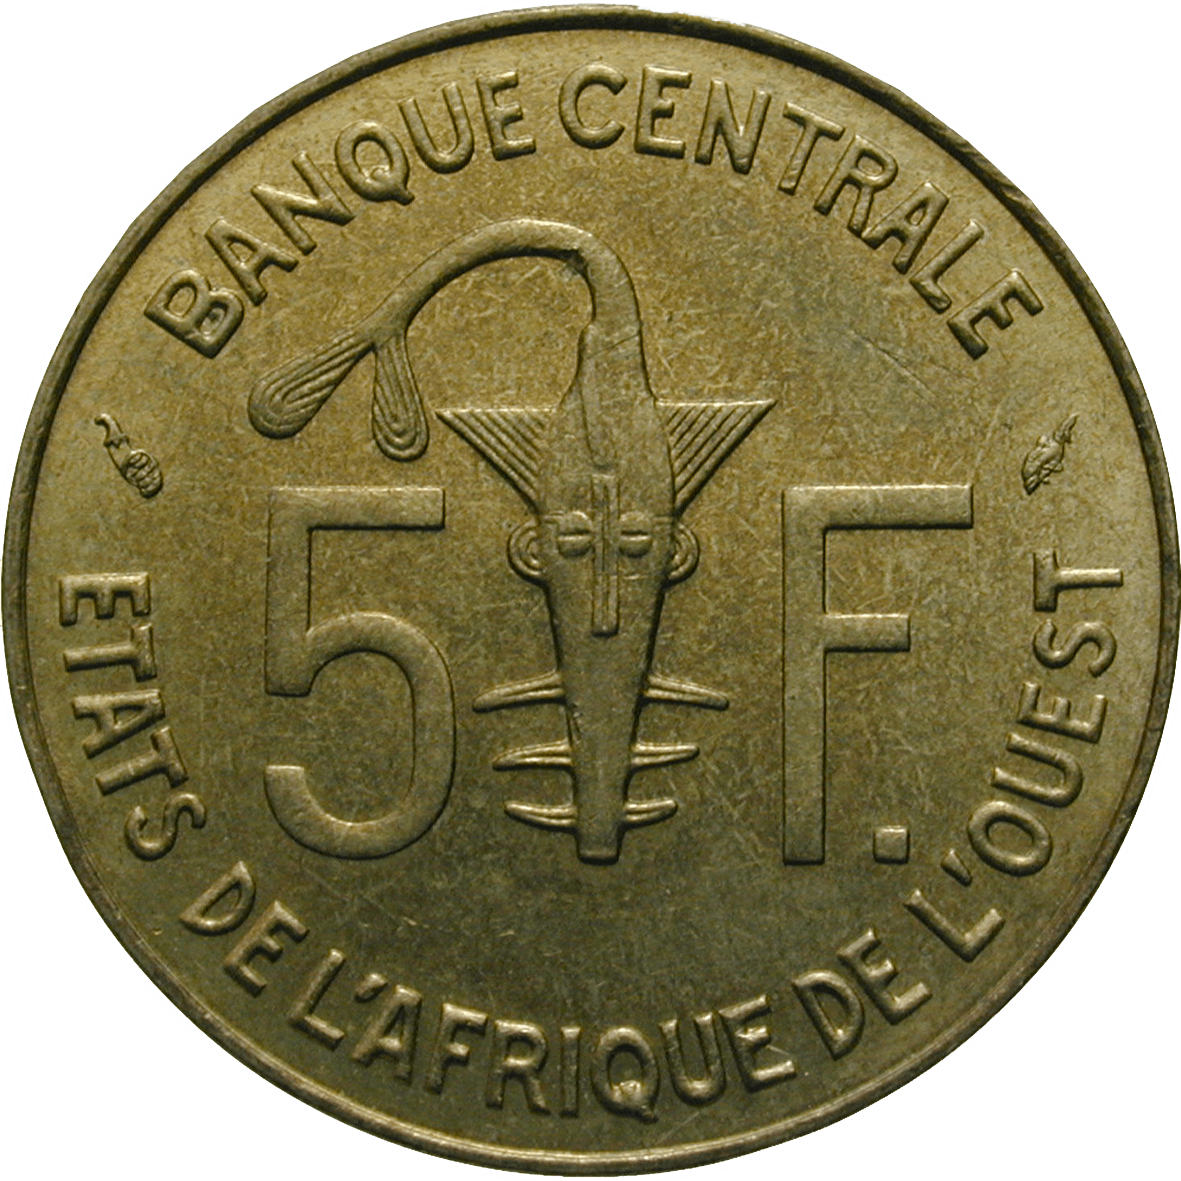 West African Monetary Union, 5 CFA Francs 1977 (obverse)